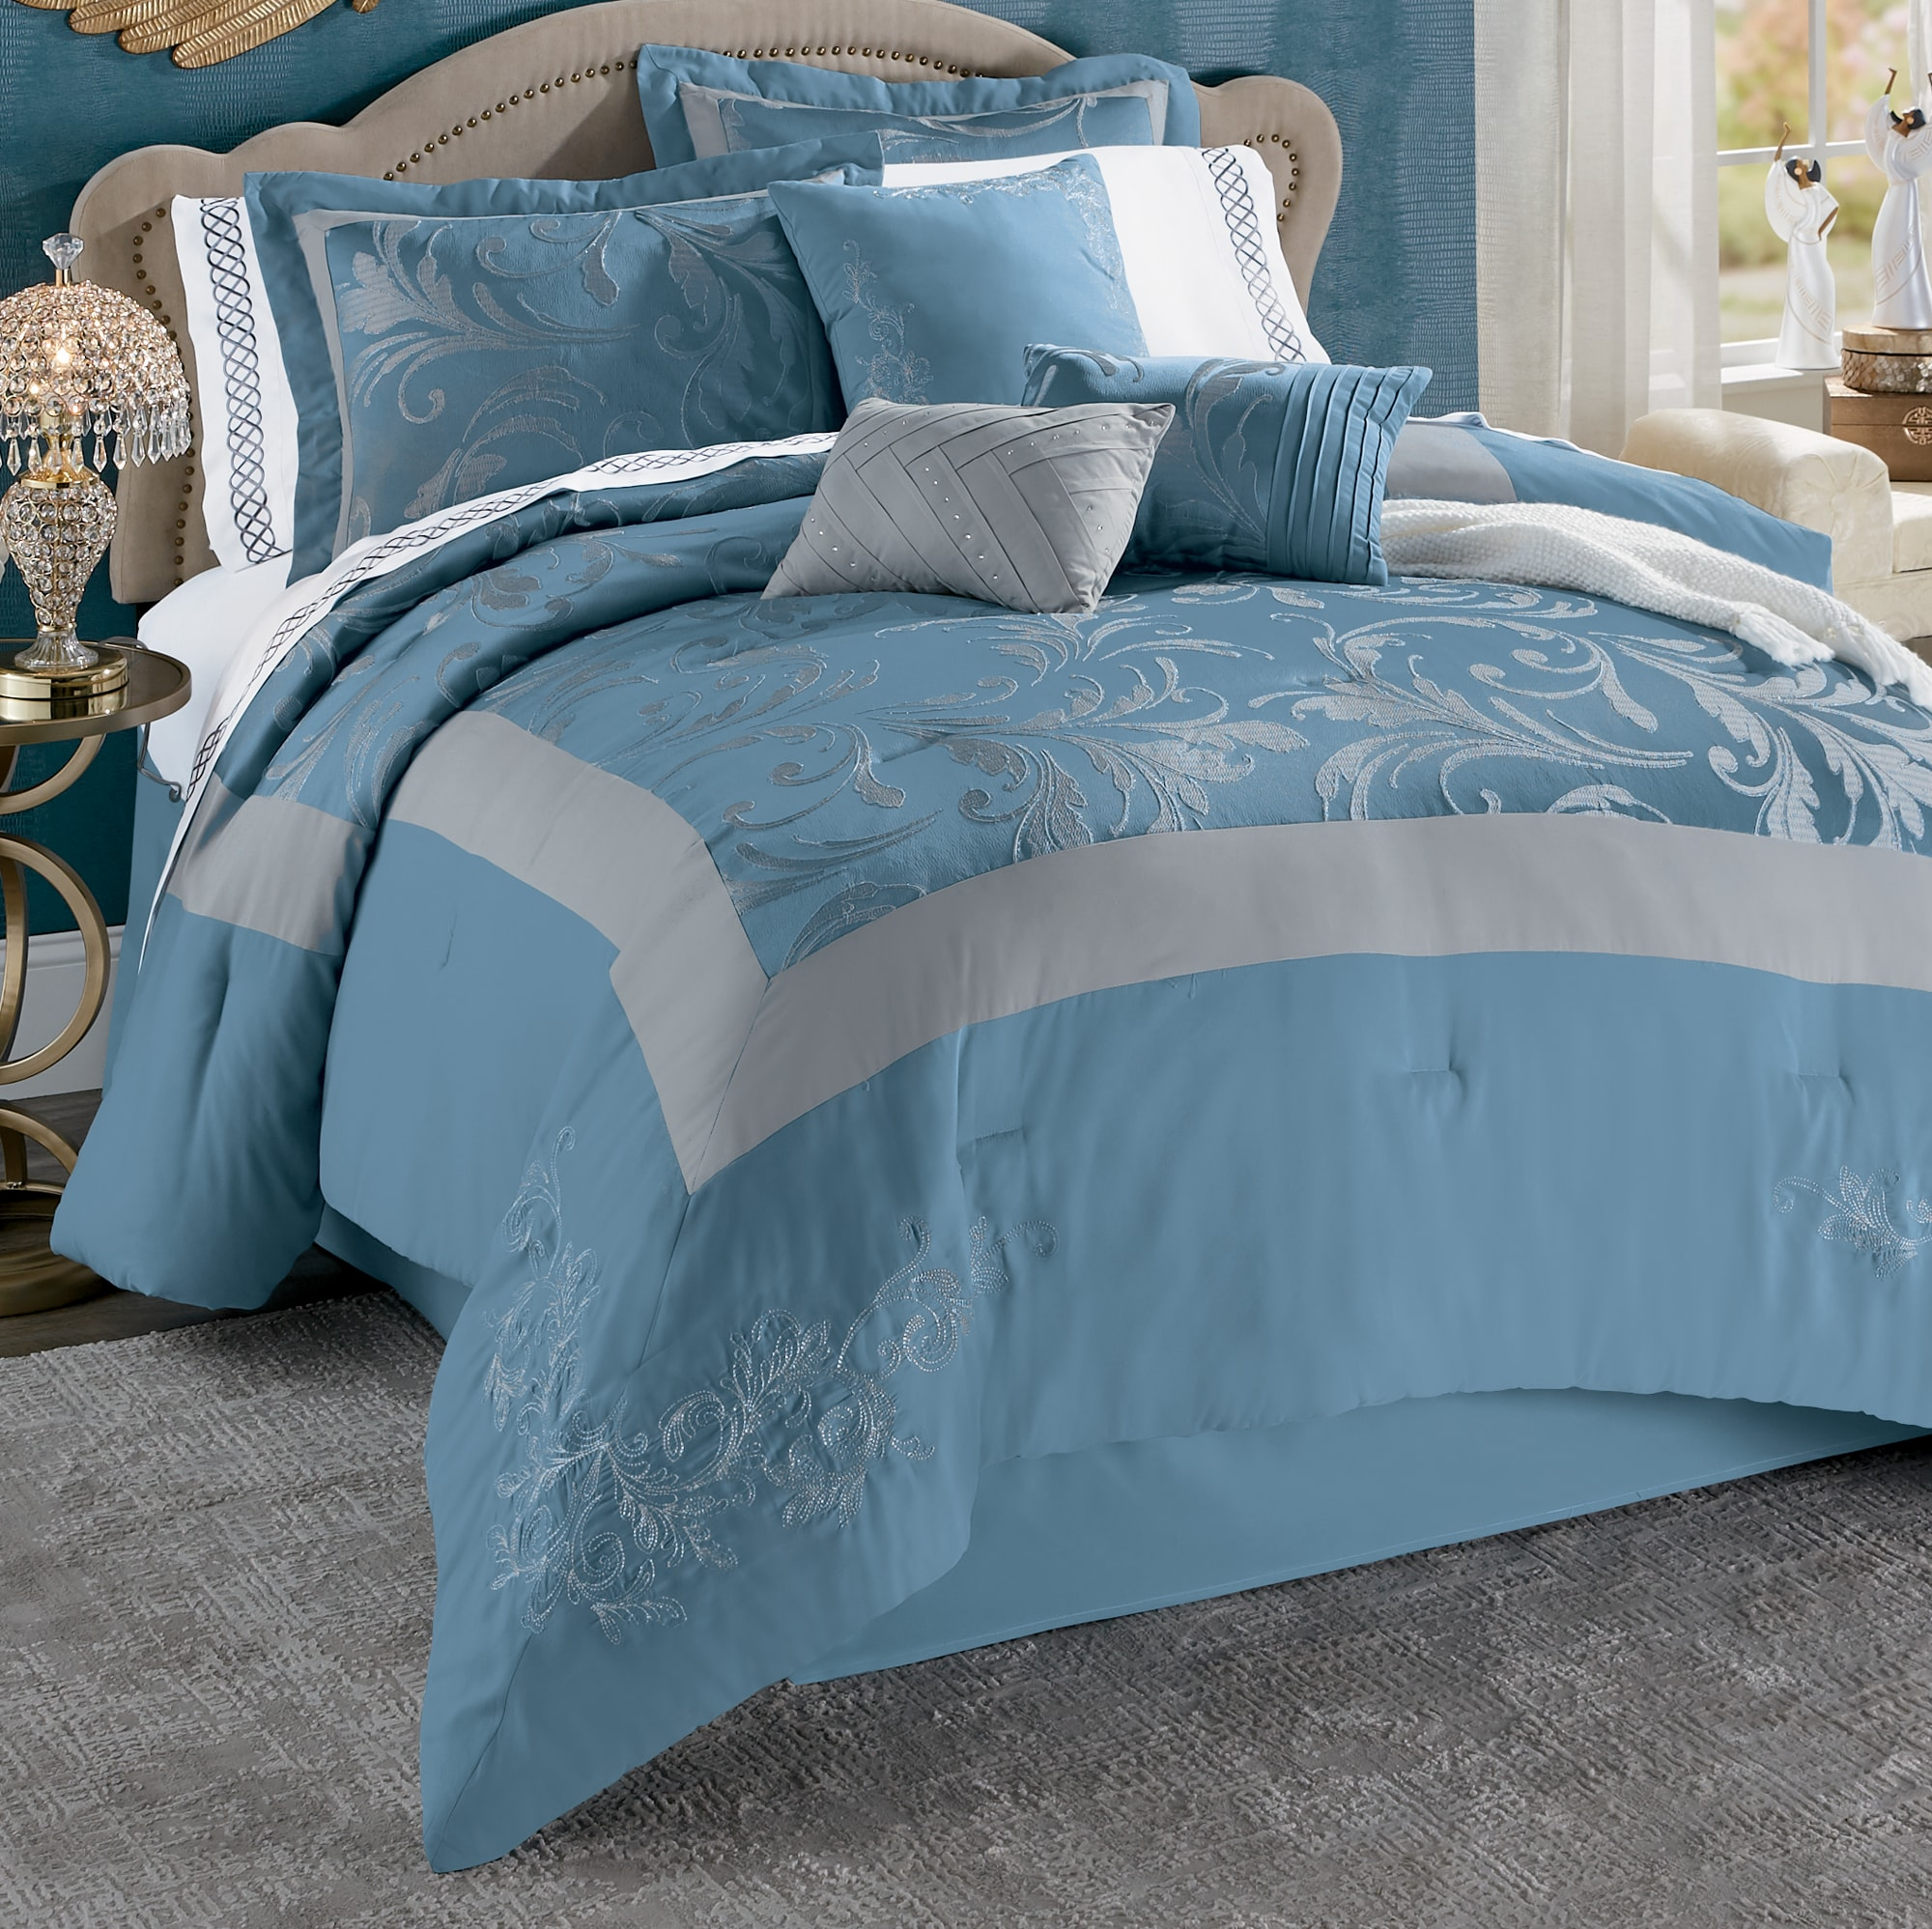 channing 7 piece bed set